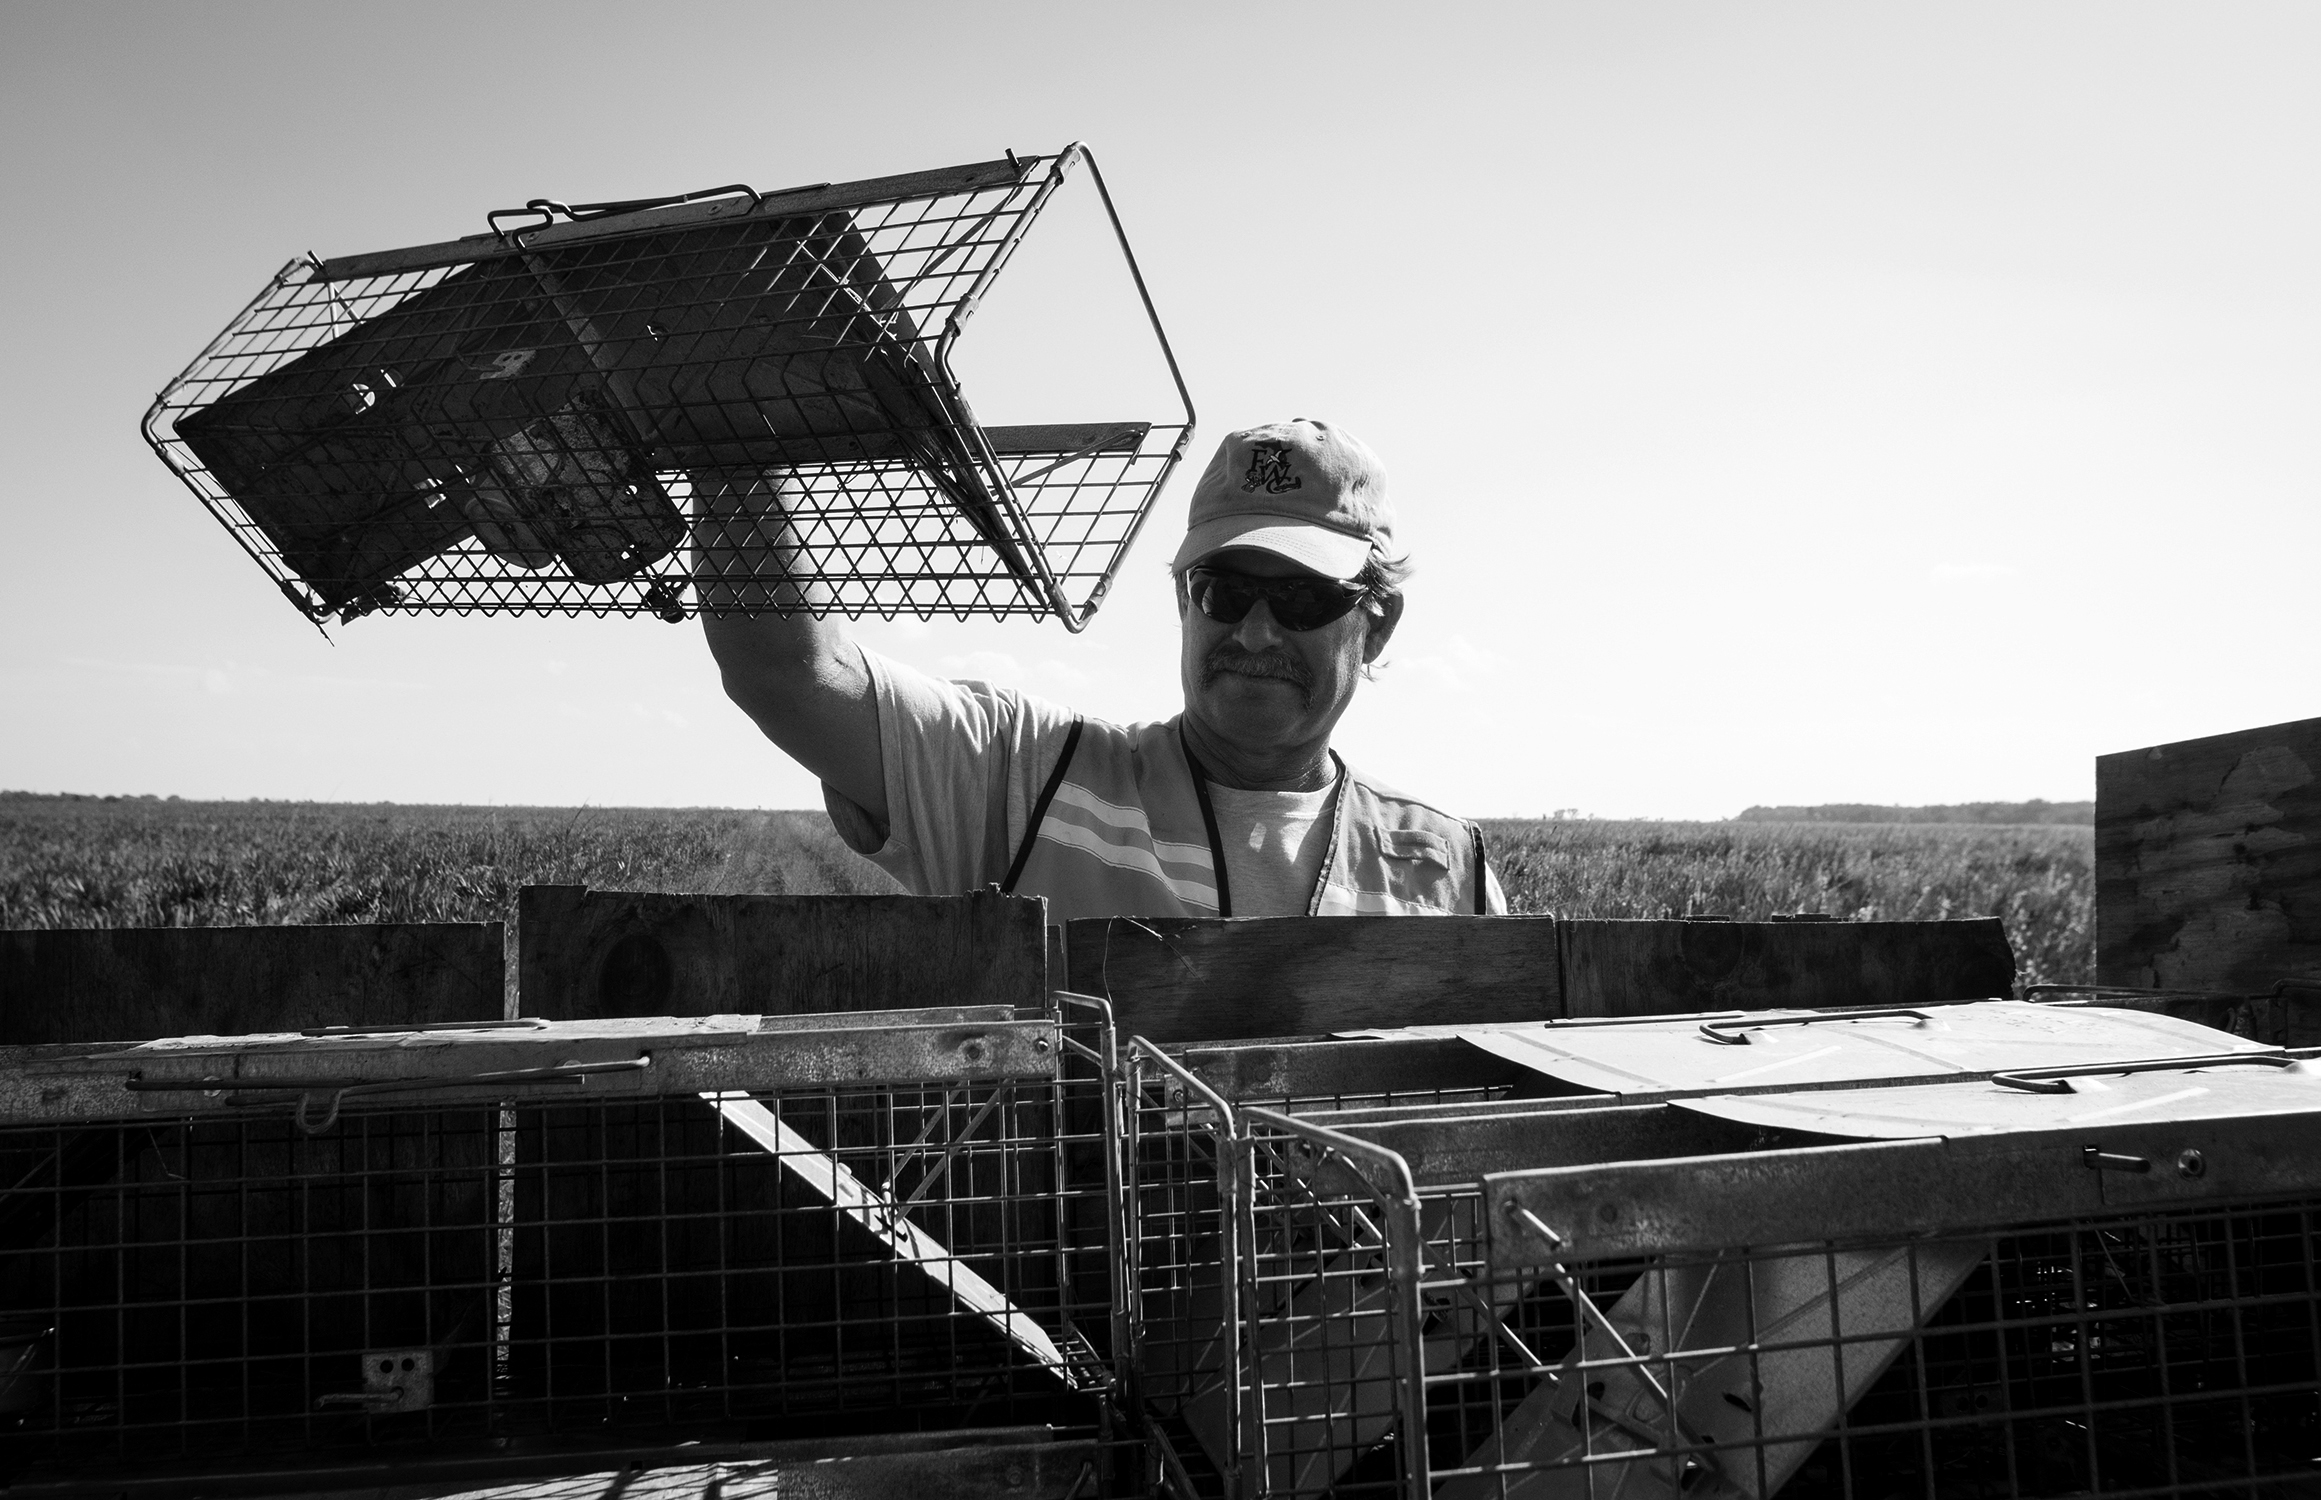 Empty cages are loaded back on the vehicle.